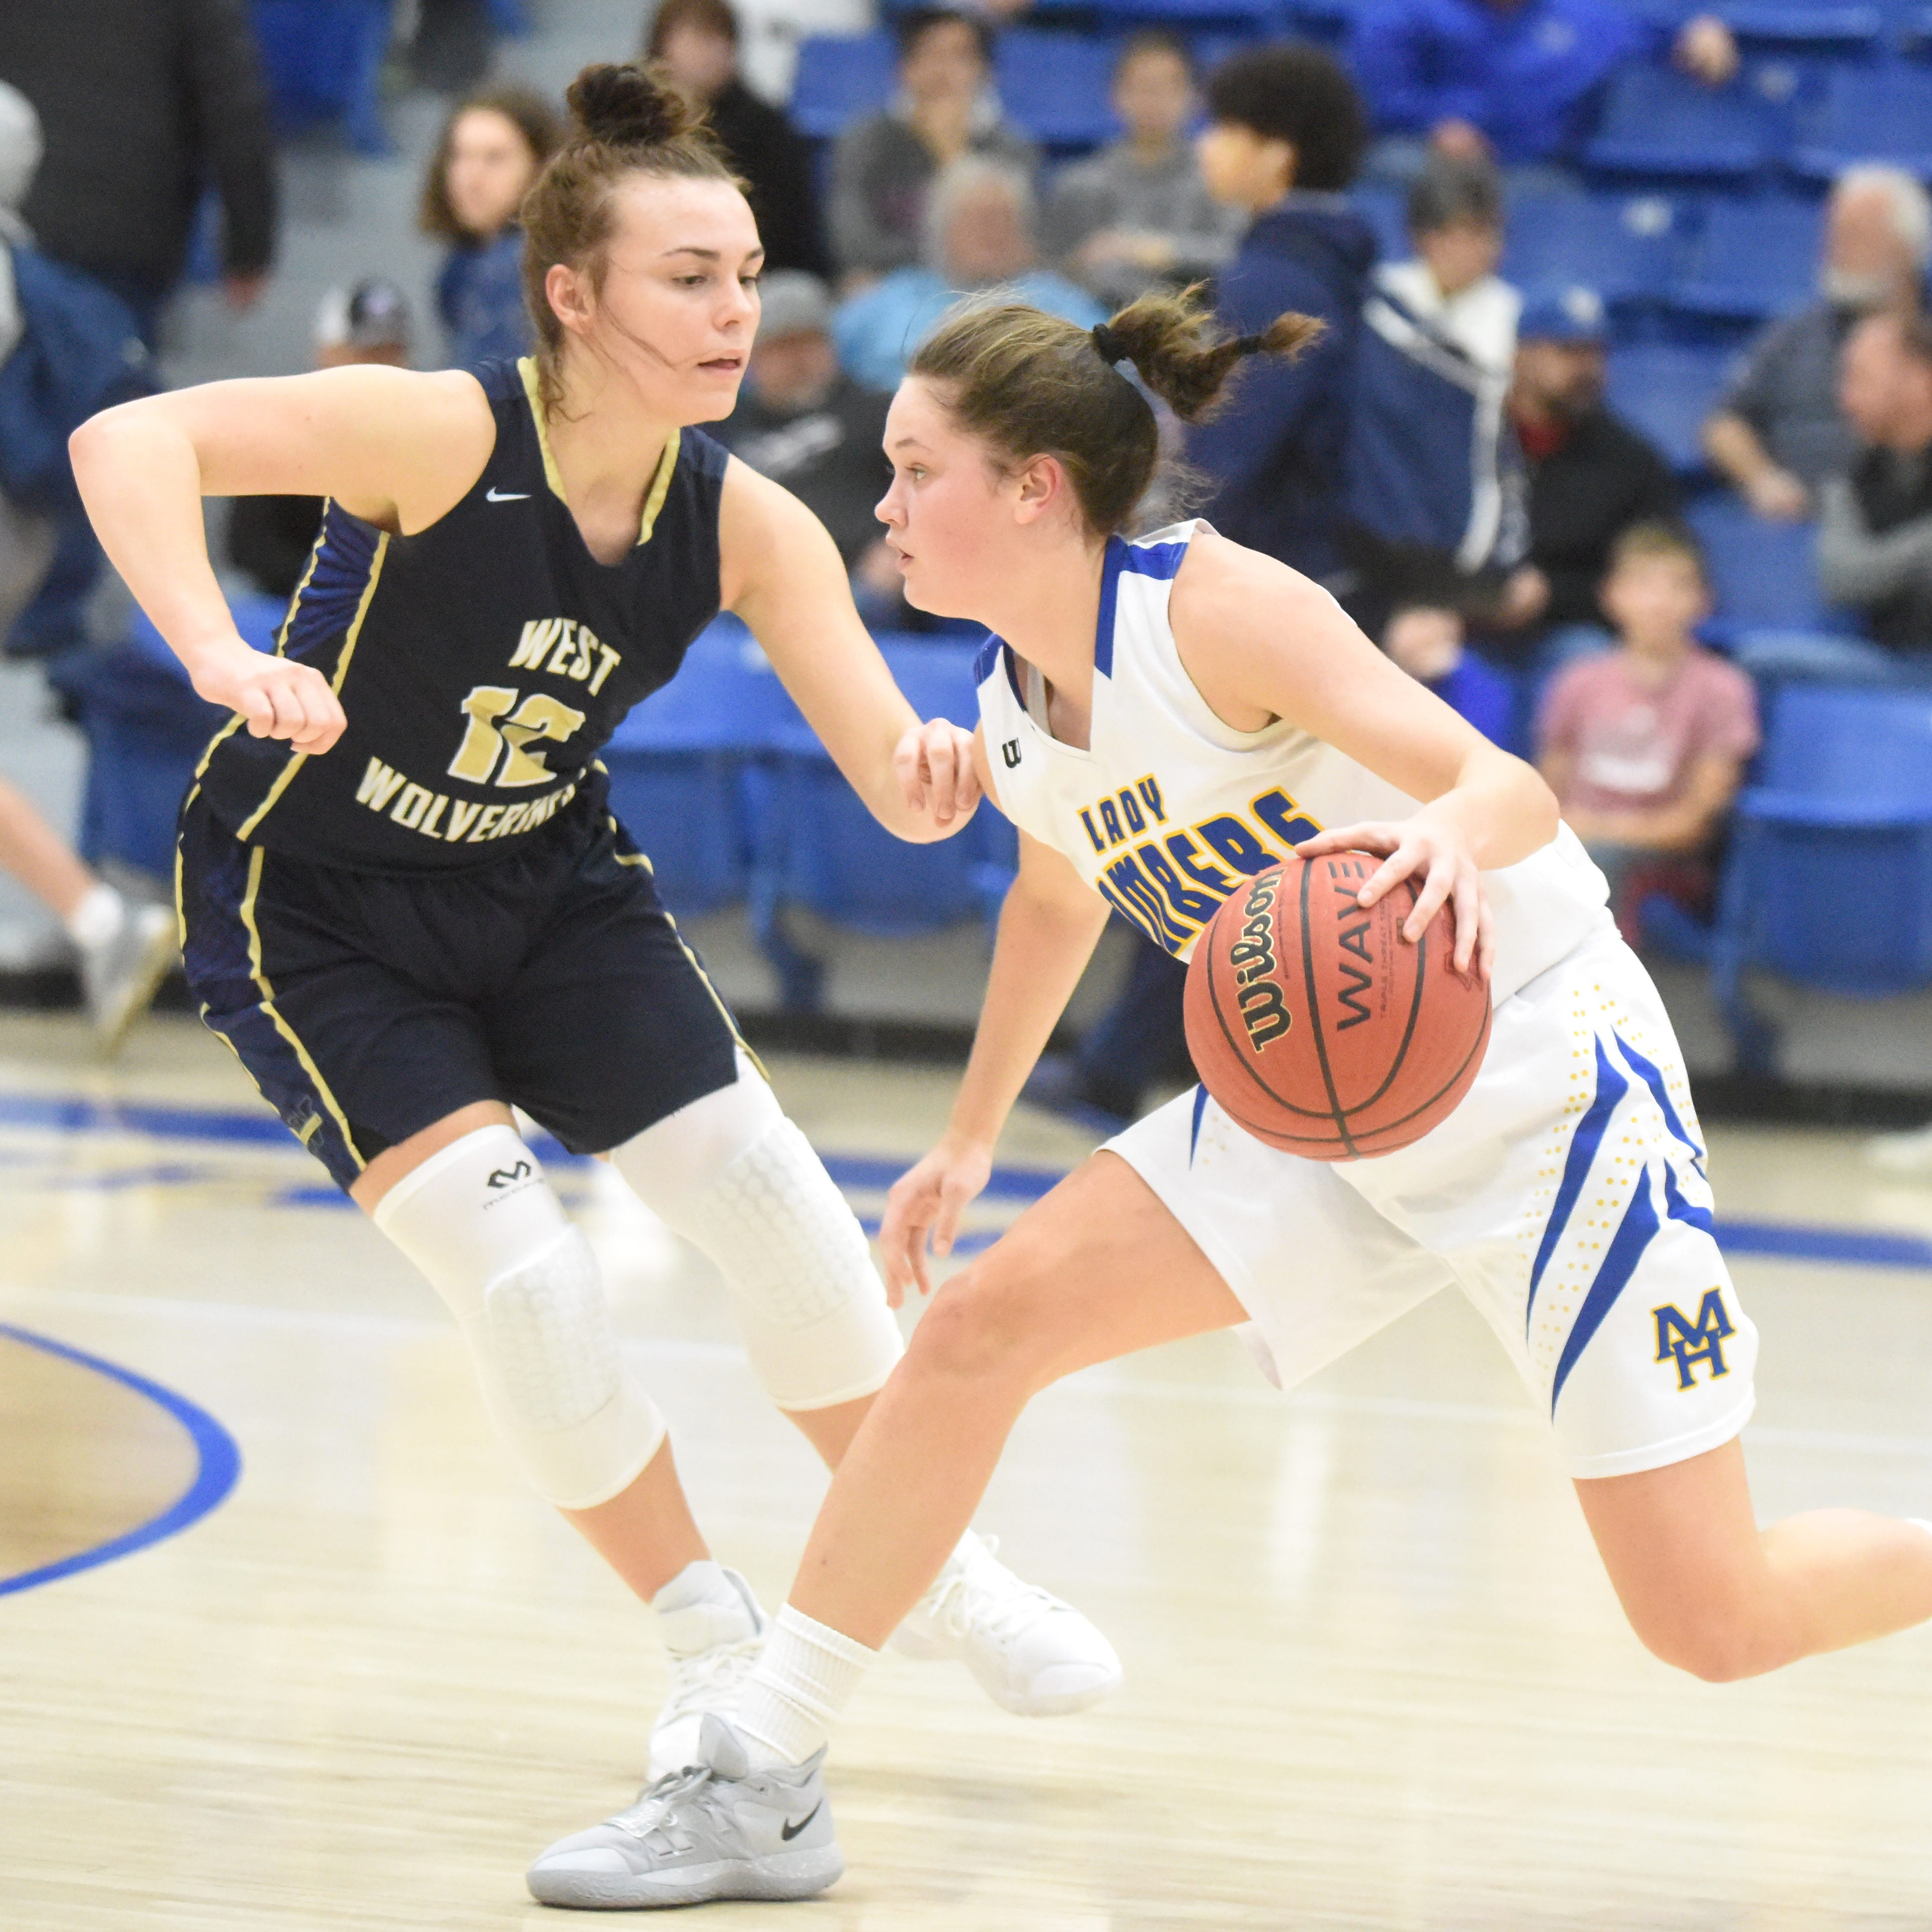 Lady Bombers own 2nd, 3rd quarters in victory